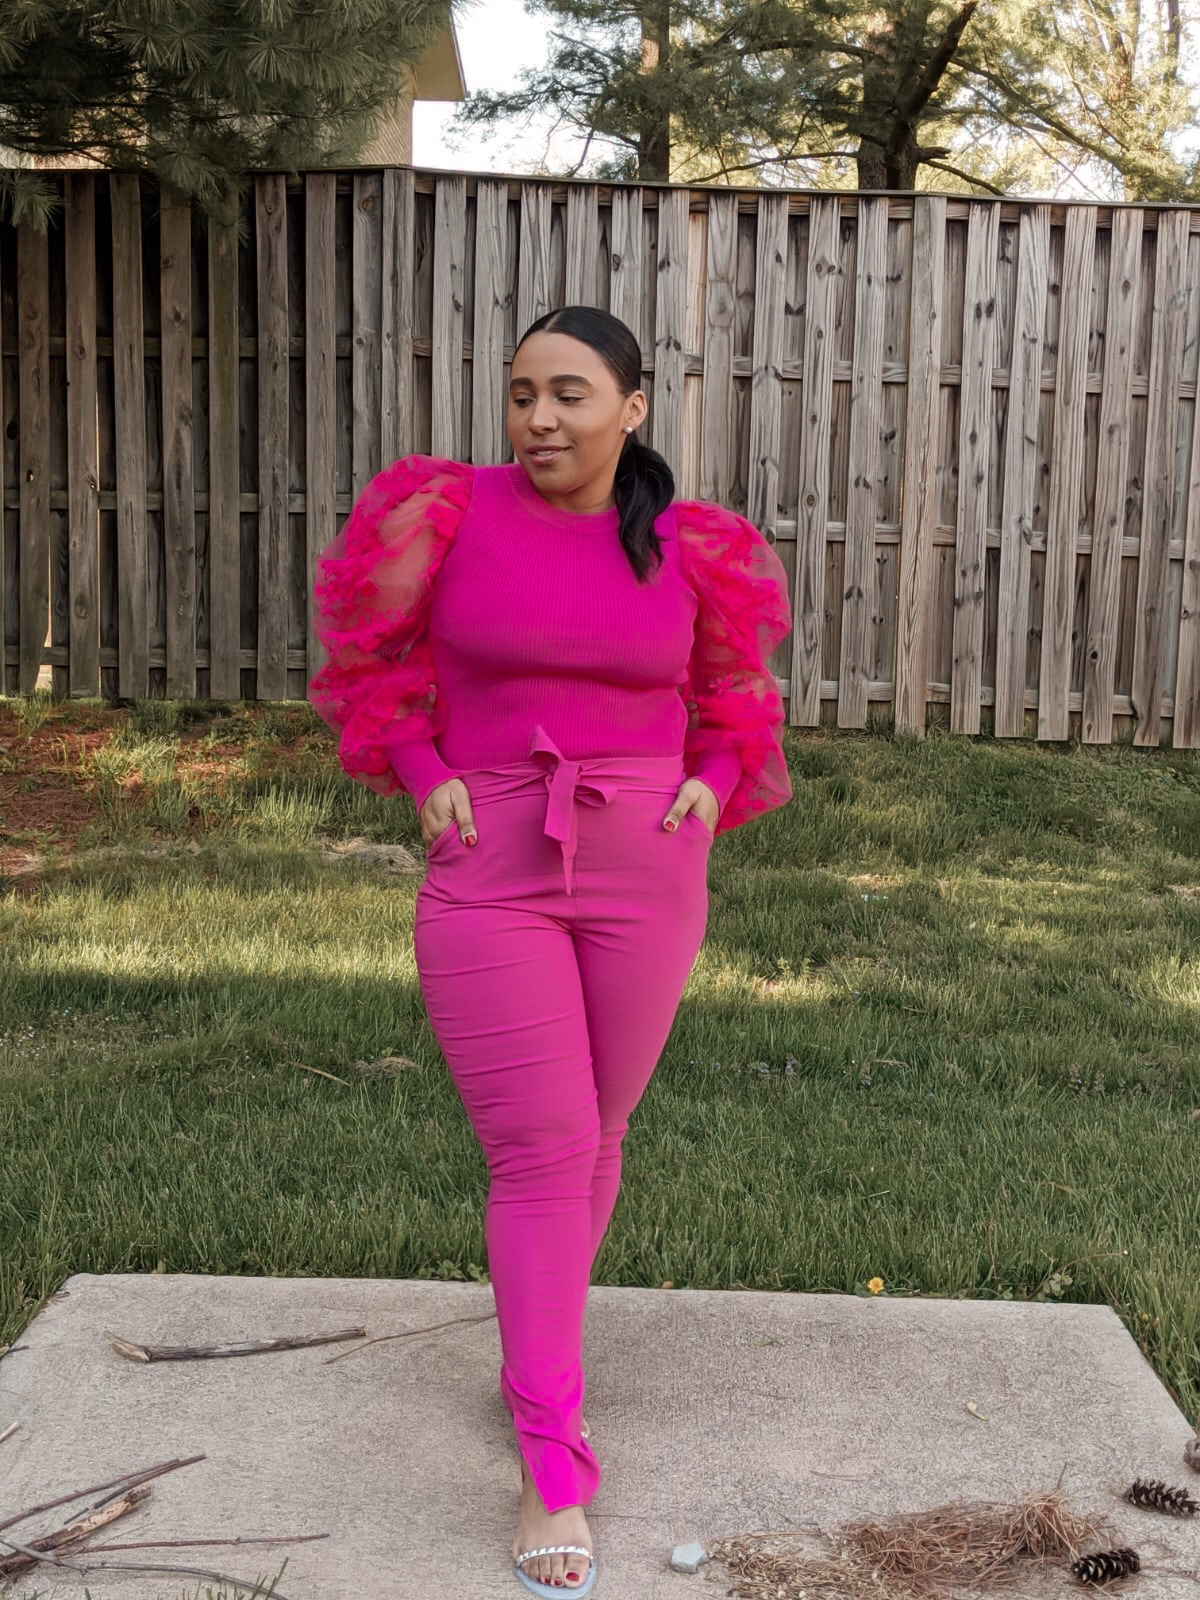 statement sleeves, puffy sleeves, spring outfit ideas, pink outfits, patty skloset, how to style puff sleeves